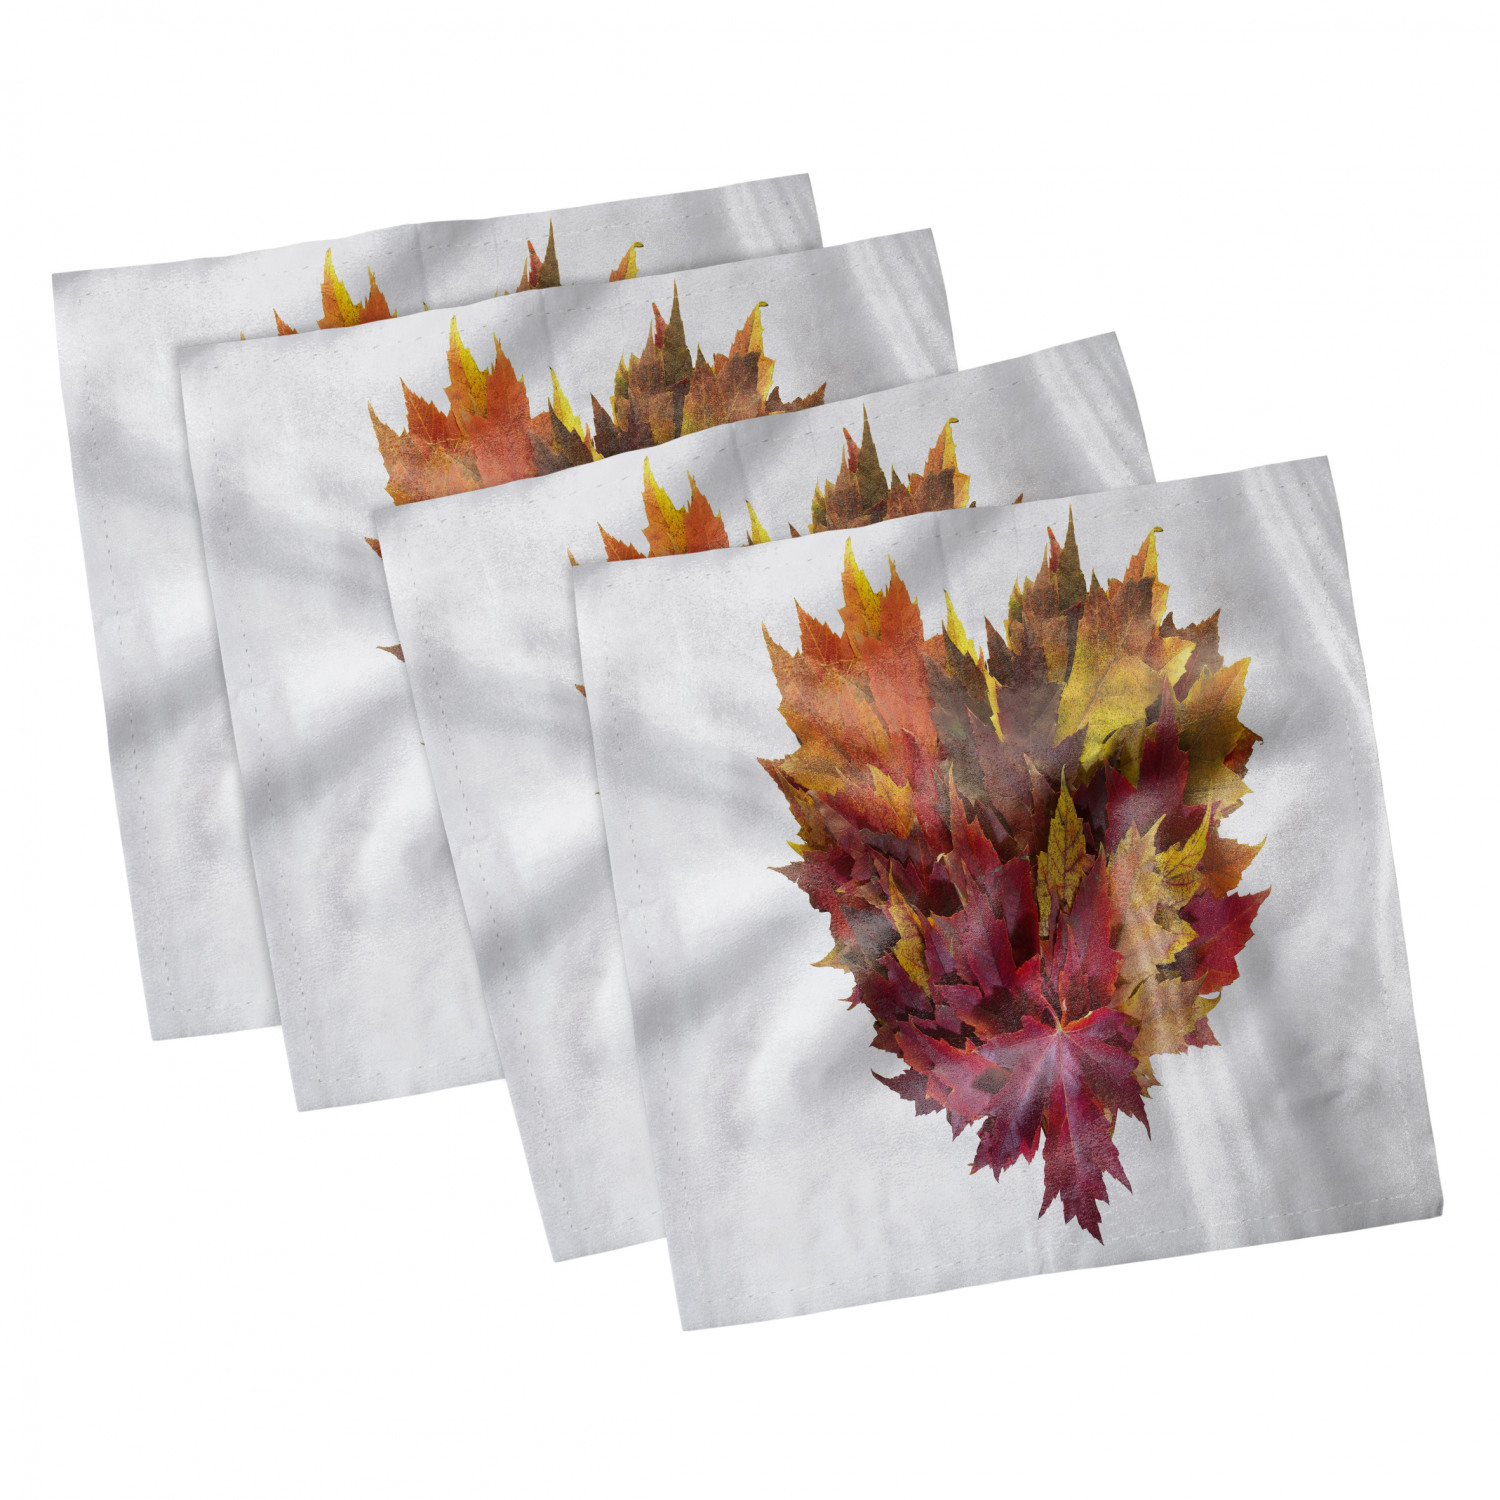 thumbnail 69 - Ambesonne-Leaves-Forest-Decorative-Satin-Napkins-Set-of-4-Party-Dinner-Fabric